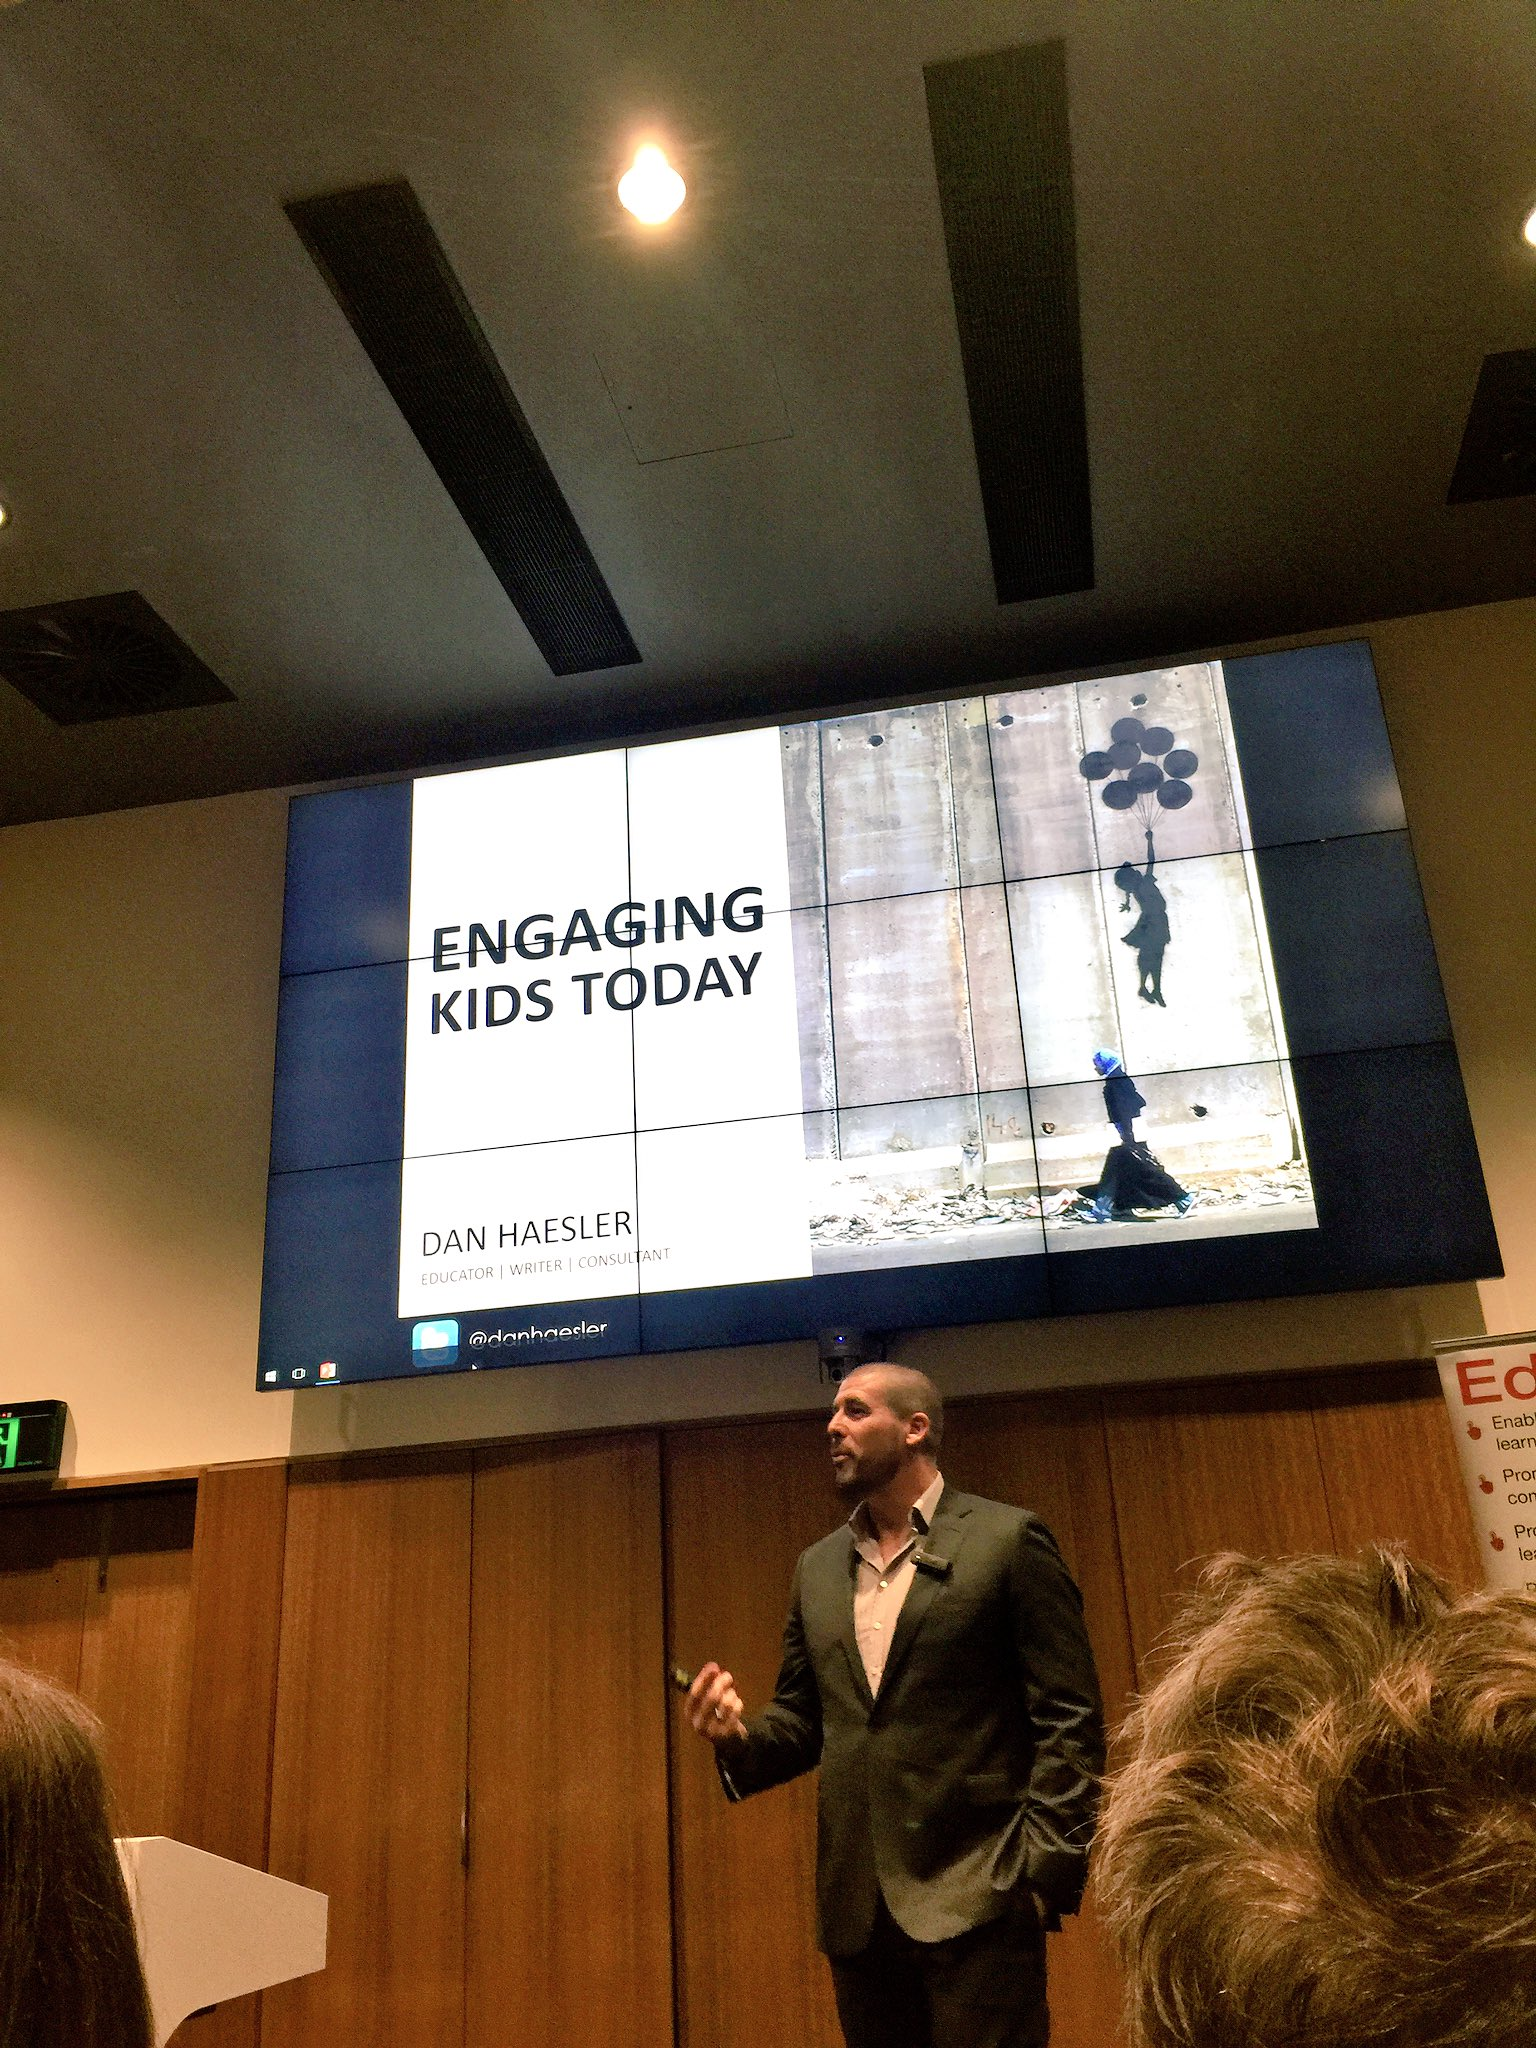 Engaging kids today #DECD #EdTechSA @danhaesler #newbasics educator writer consultant https://t.co/jSPNxC7P6R